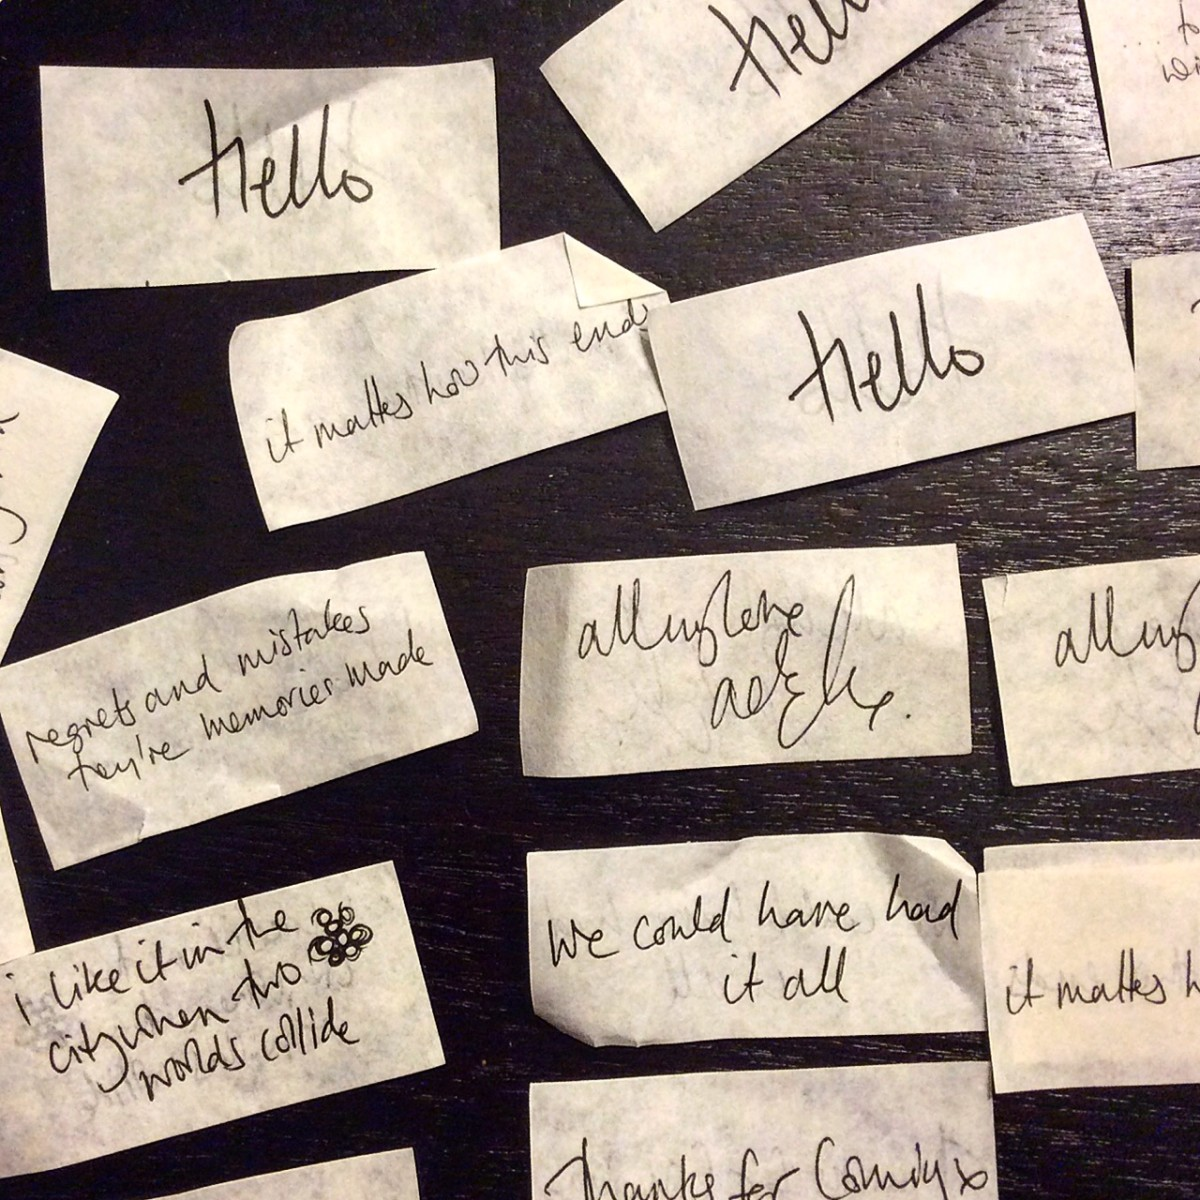 Adele confetti in London concert